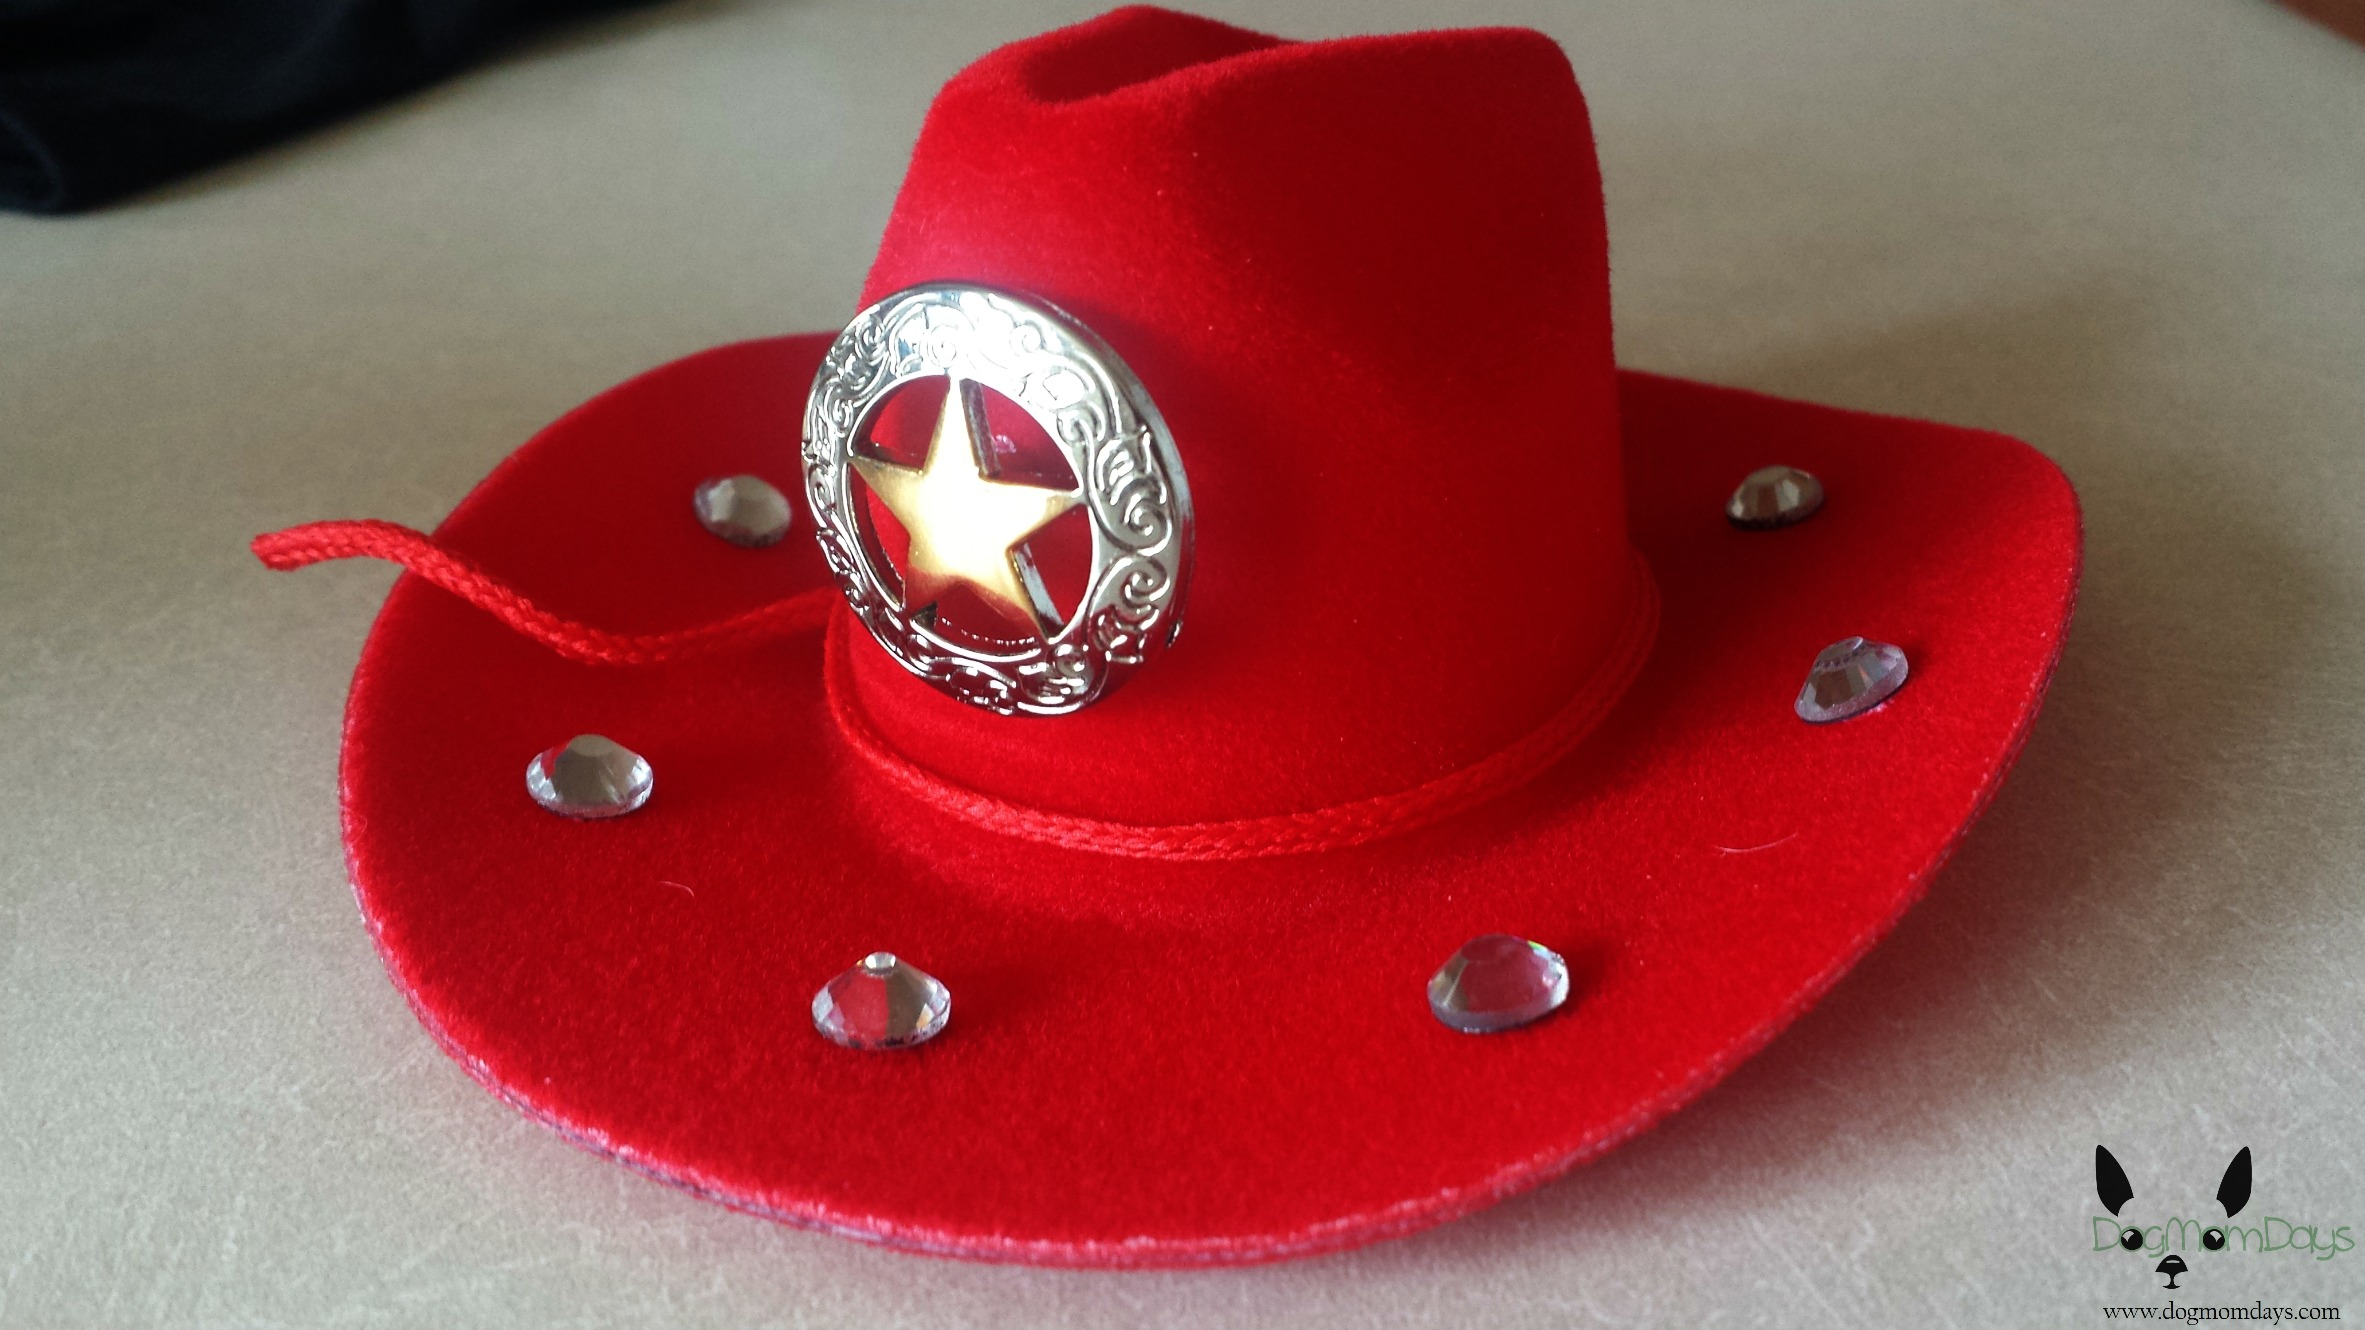 The finished cowboy hat.